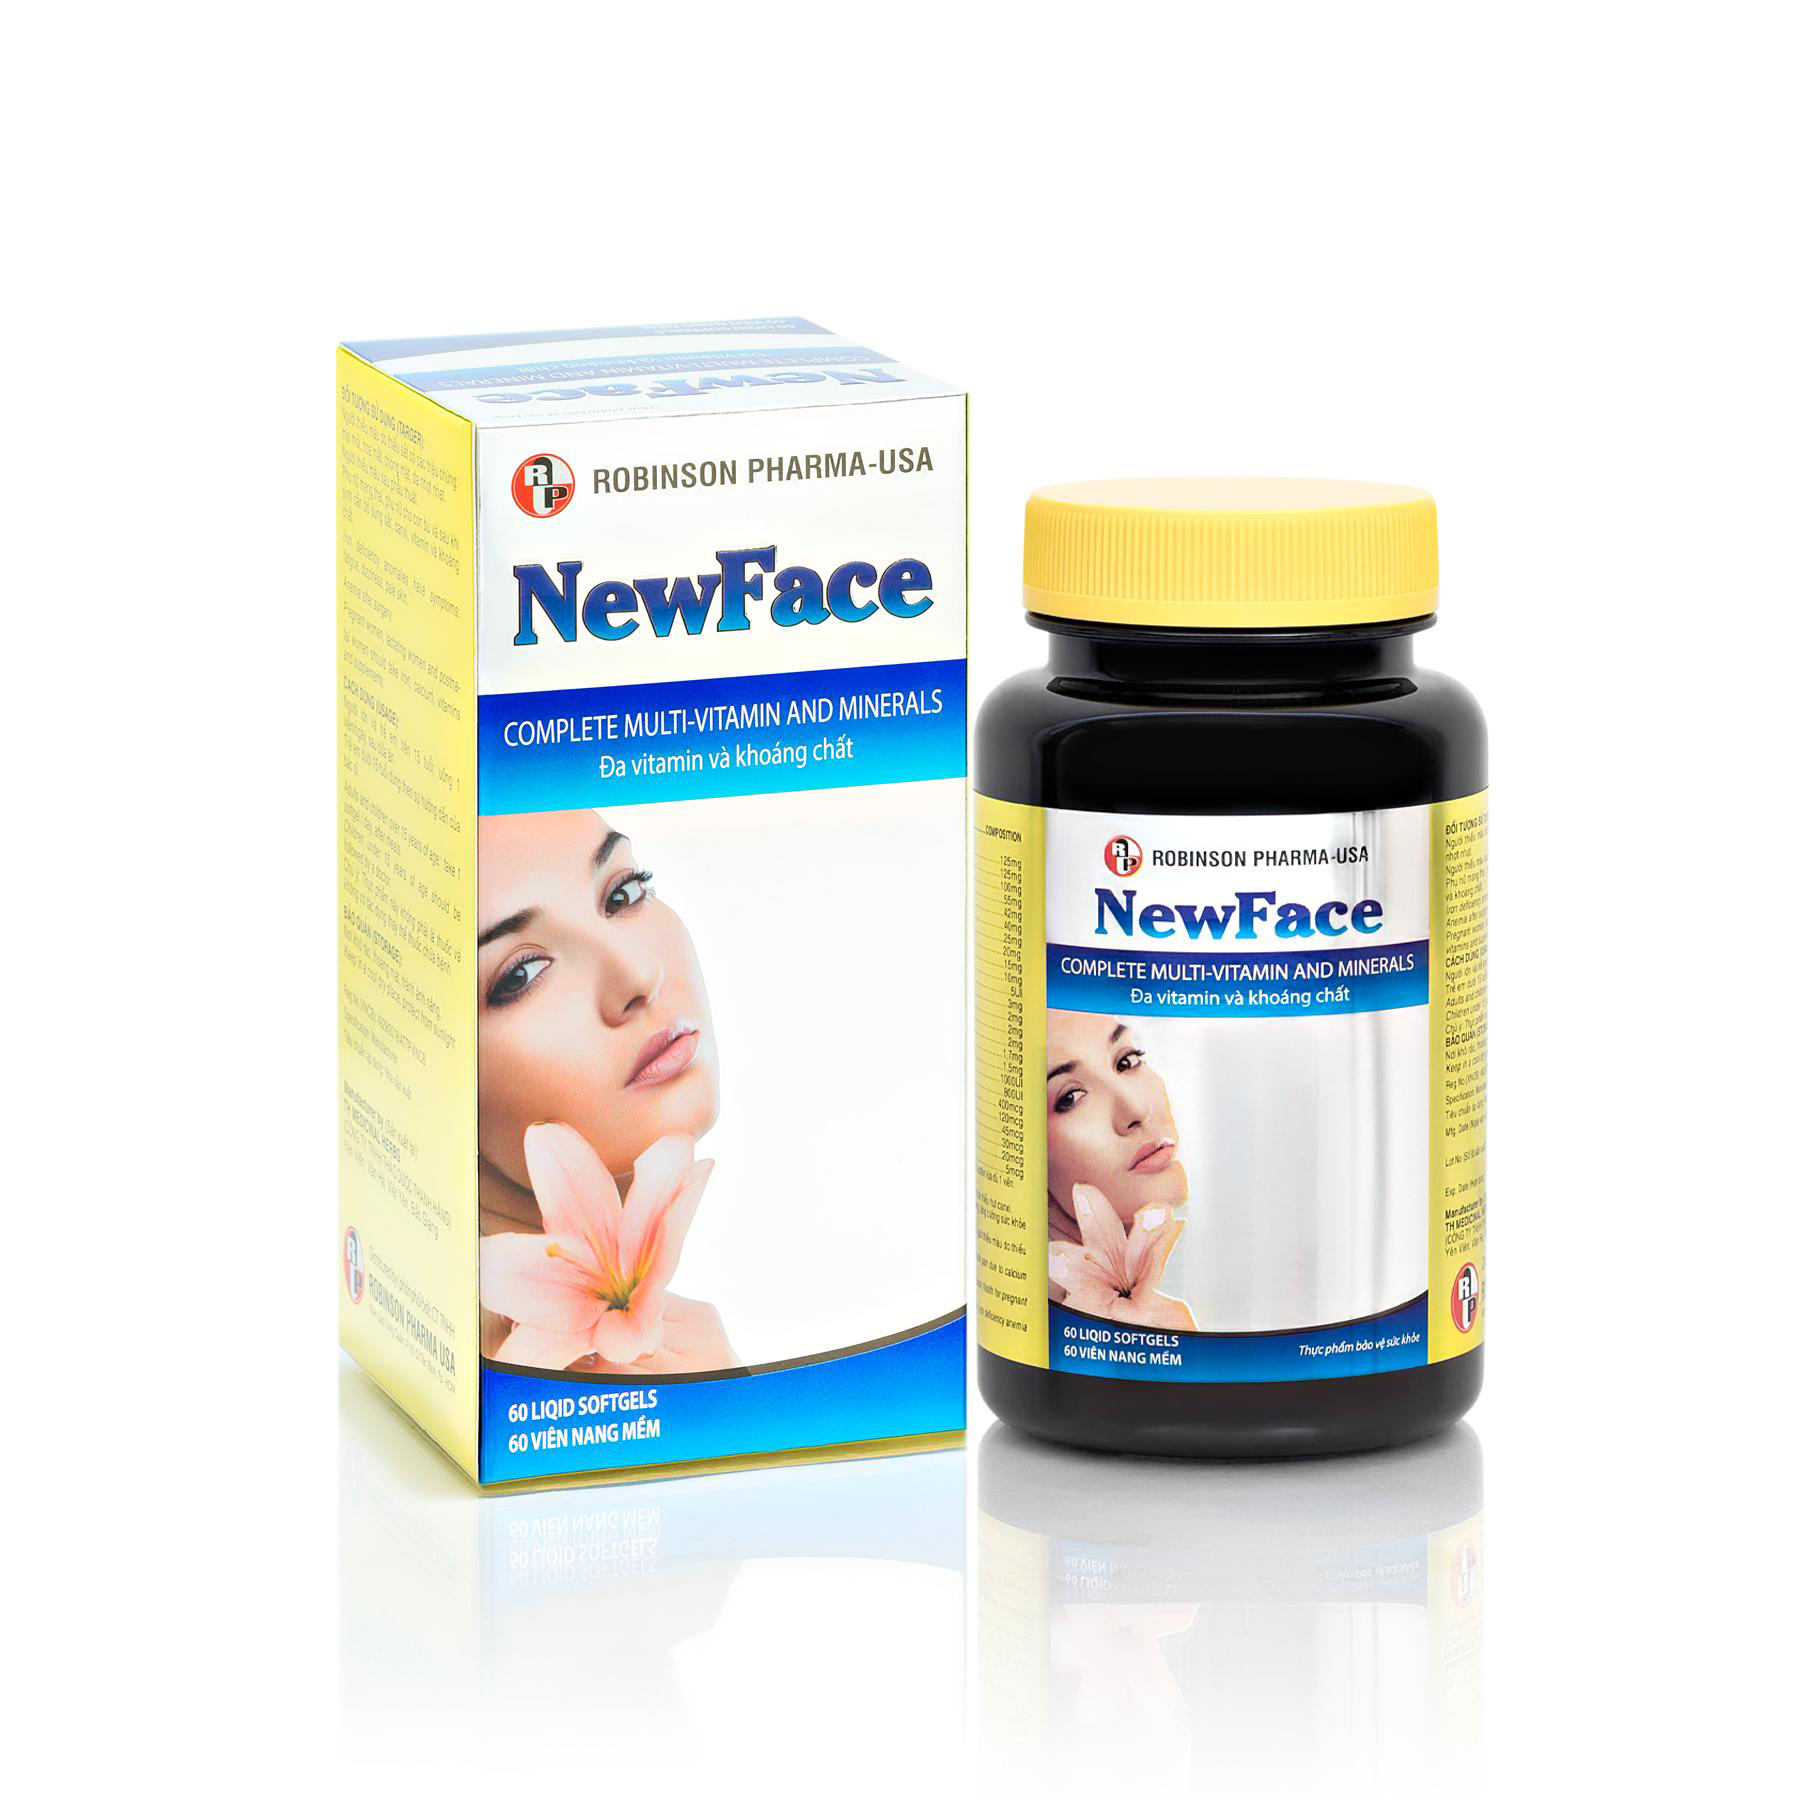 Newface - Complete Multi-Vitamin and Minerals